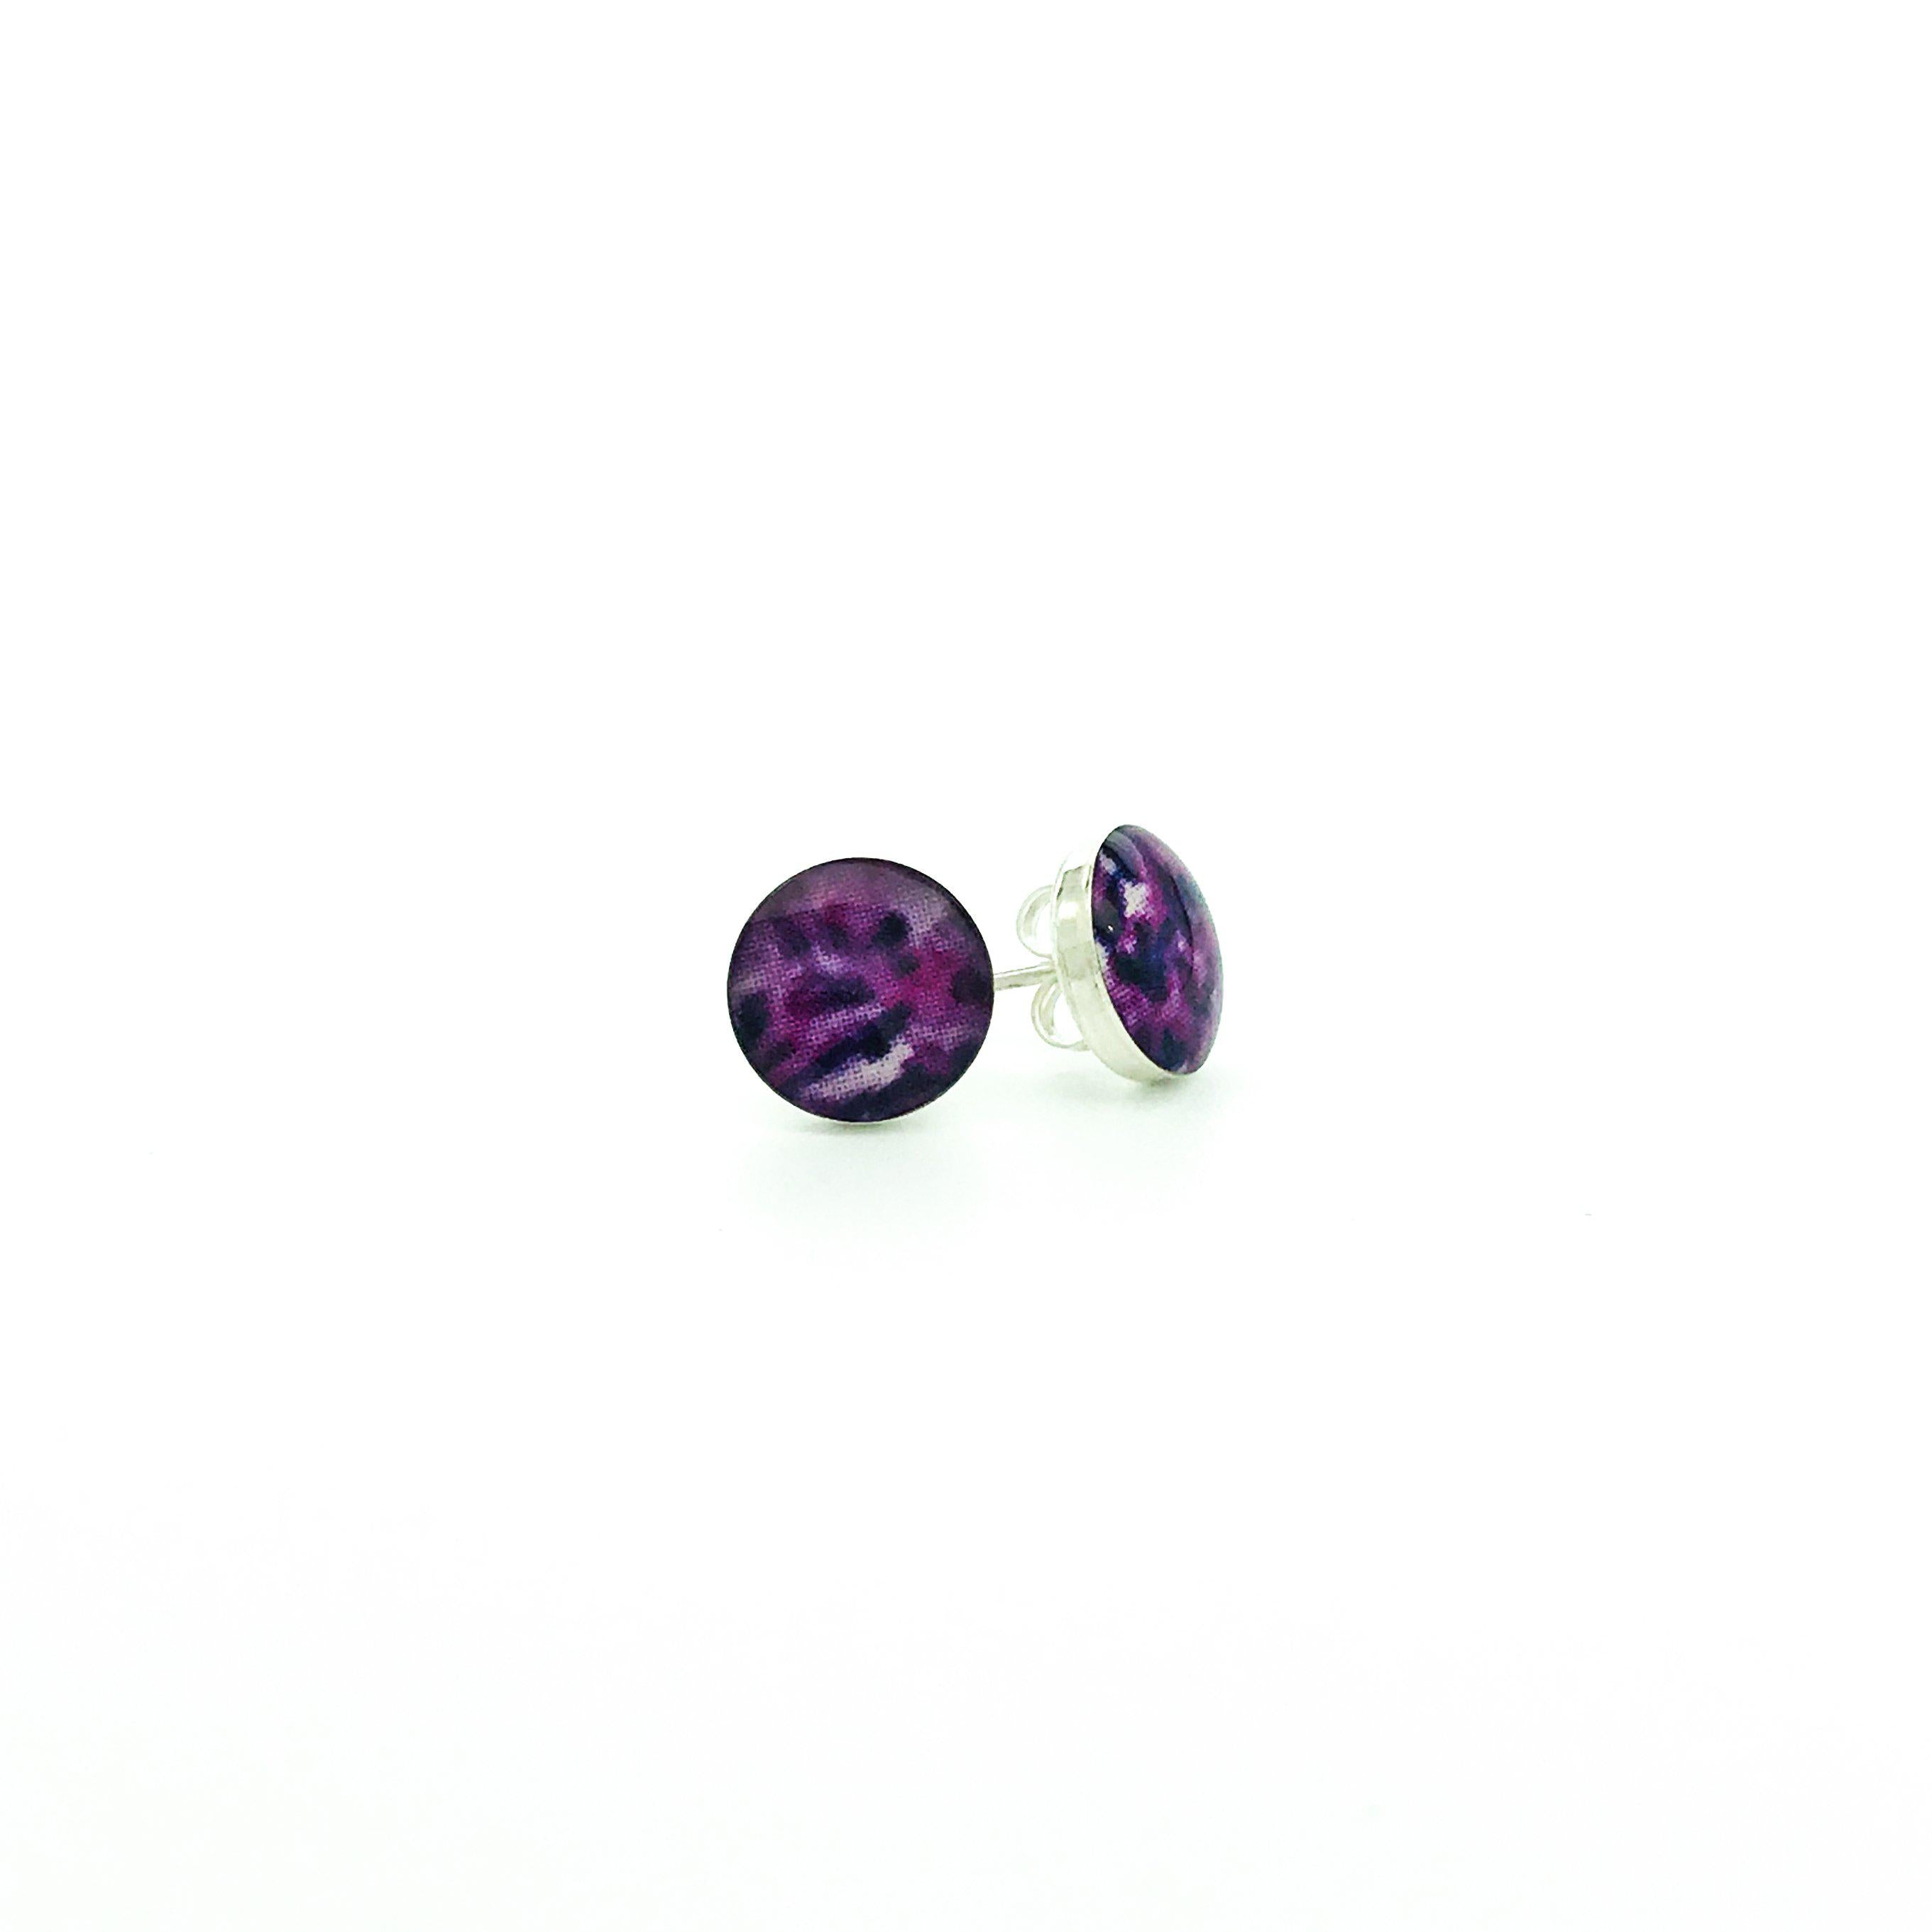 8mm round sterling silver stud earrings with purple sarcoma cell image in resin and ear nut backing